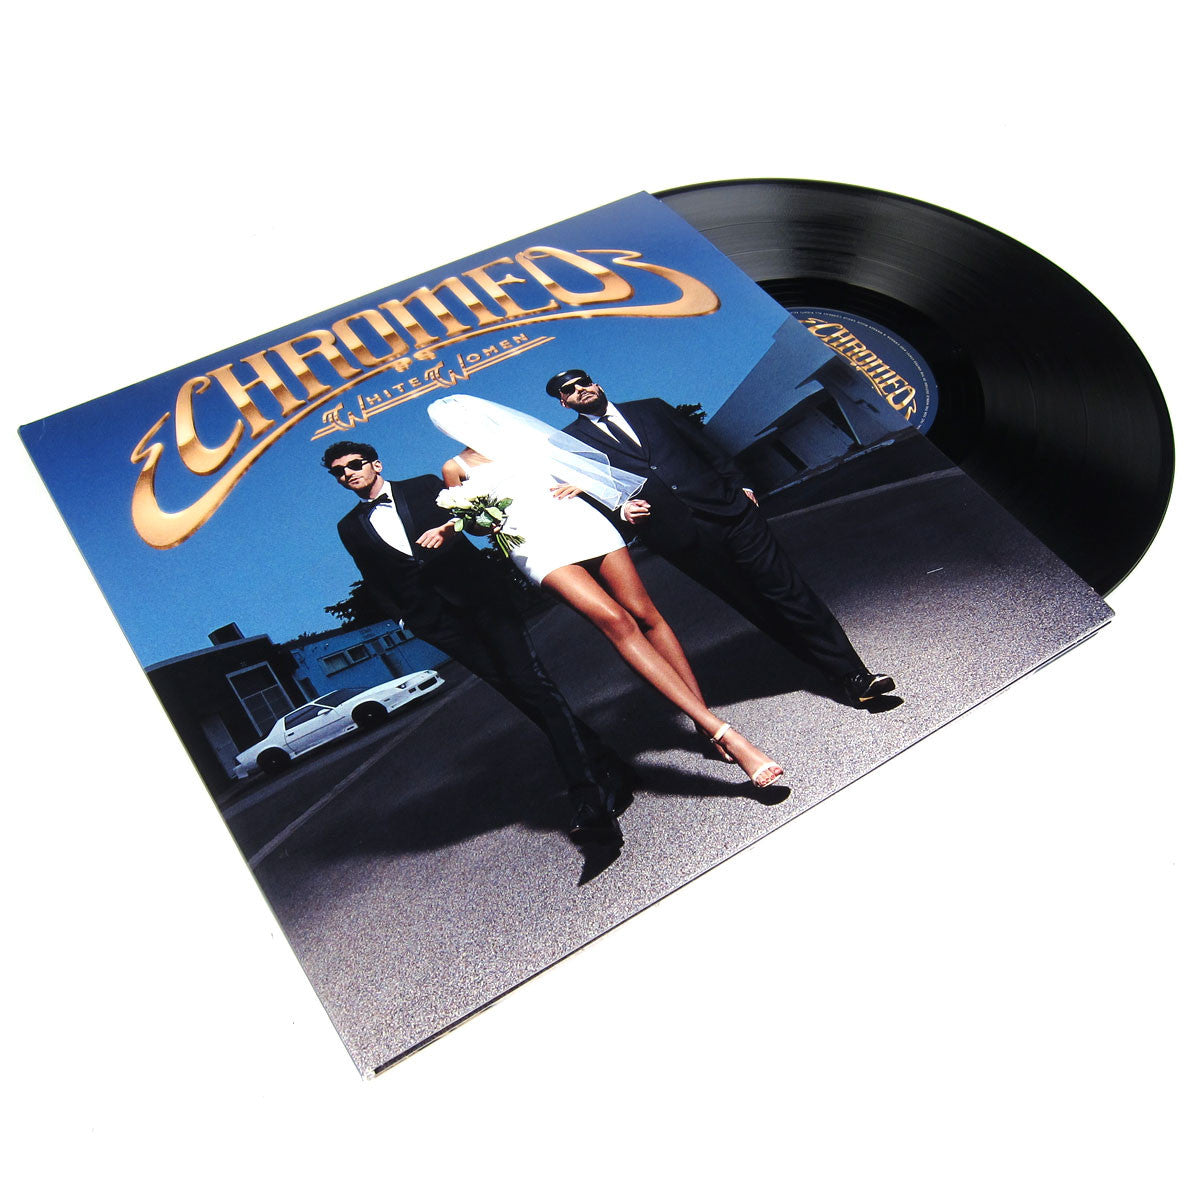 Chromeo: White Women (180g, Free MP3) Vinyl 2LP